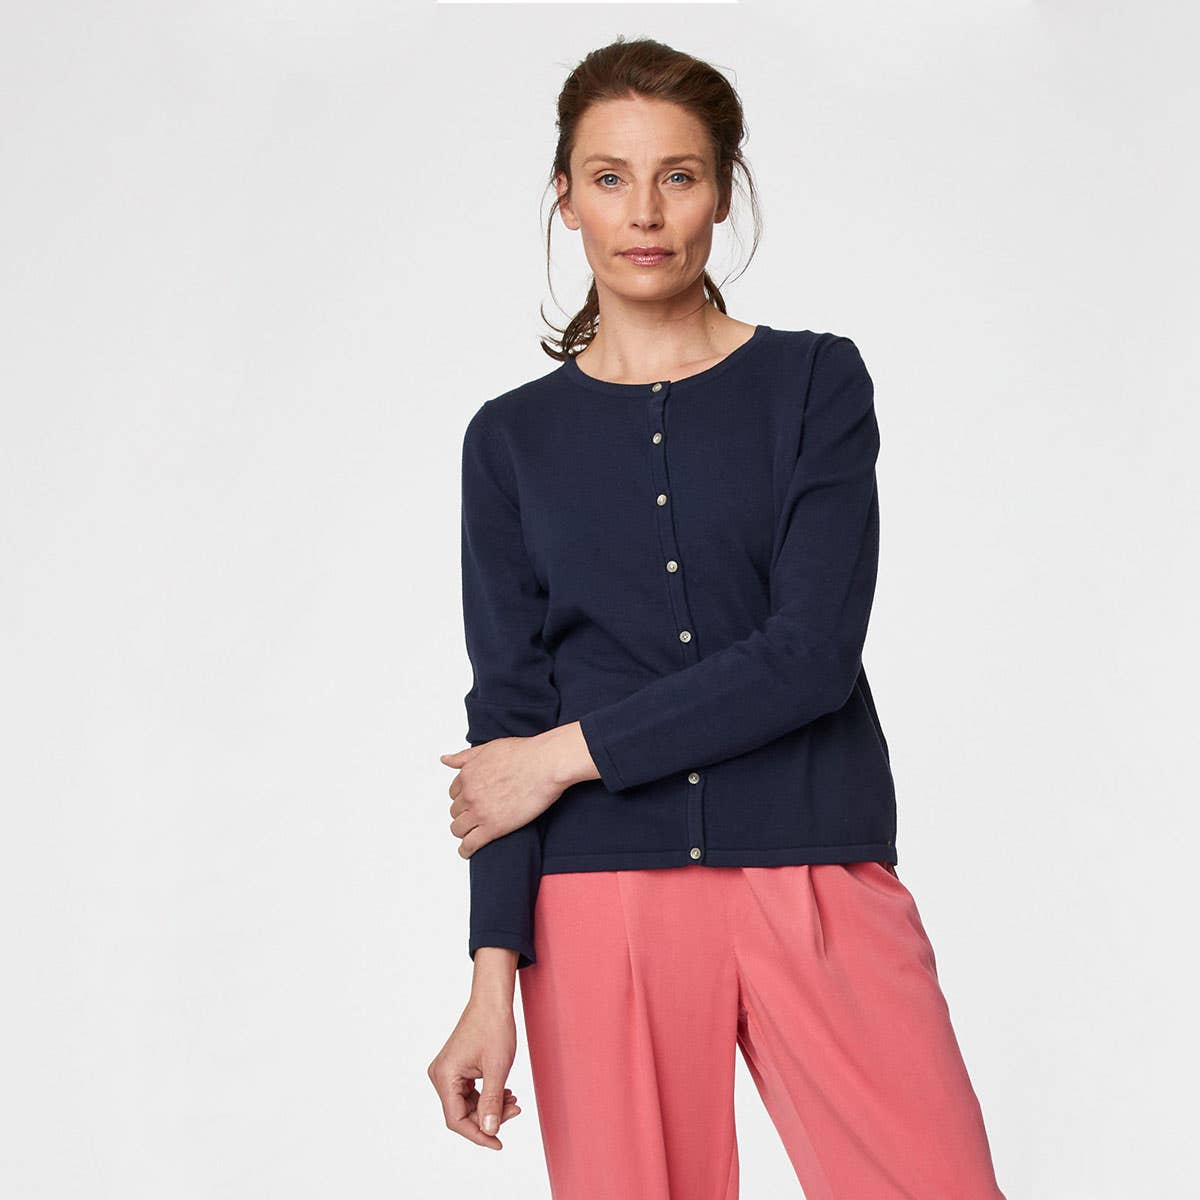 Thought Organic Cotton Navy Bodil Cardigan Size 18